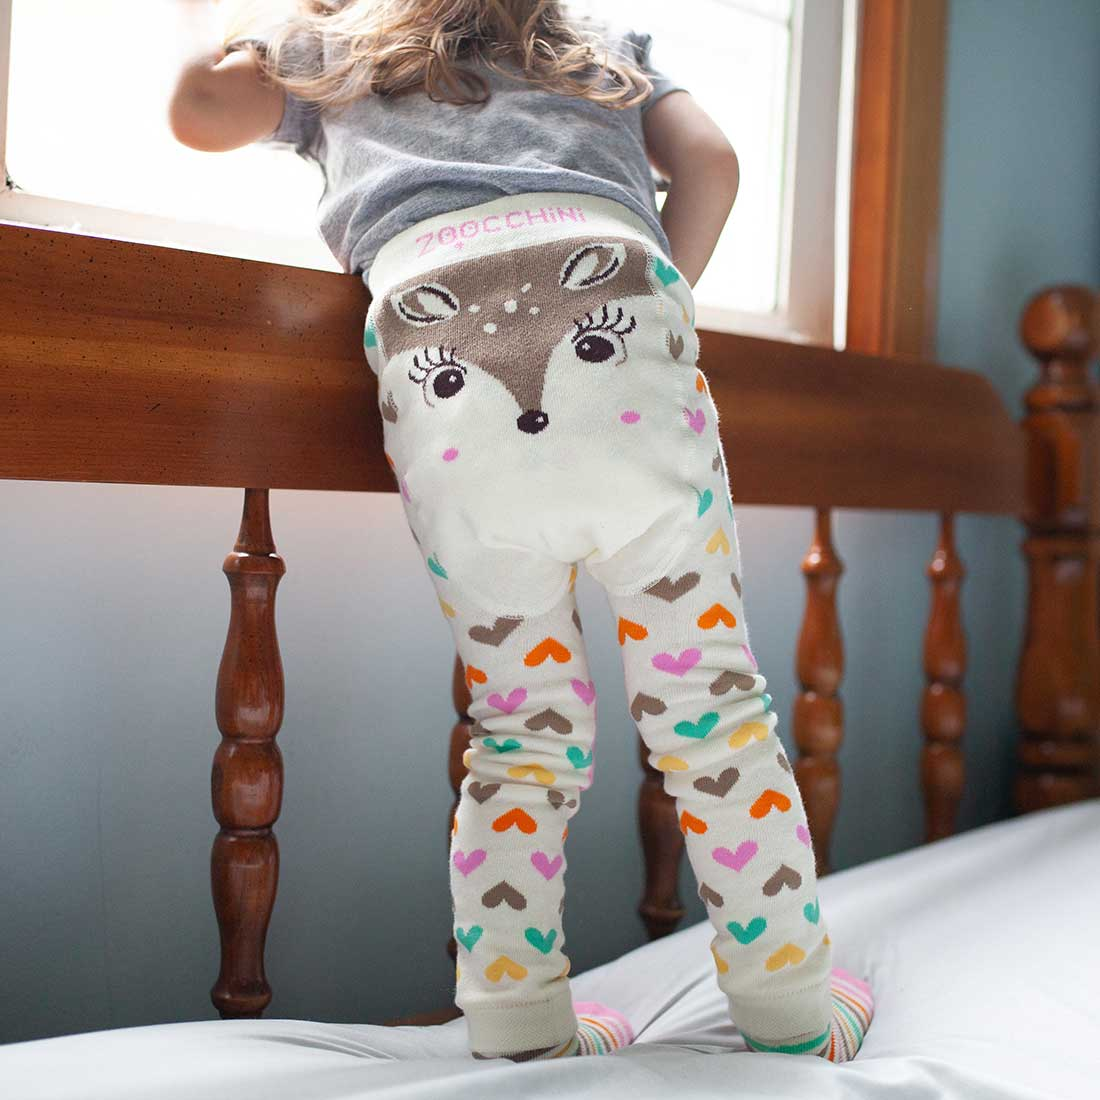 ZOOCCHINI grip+easy™ Comfort Crawler Legging & Socks Set - Fiona the Fawn